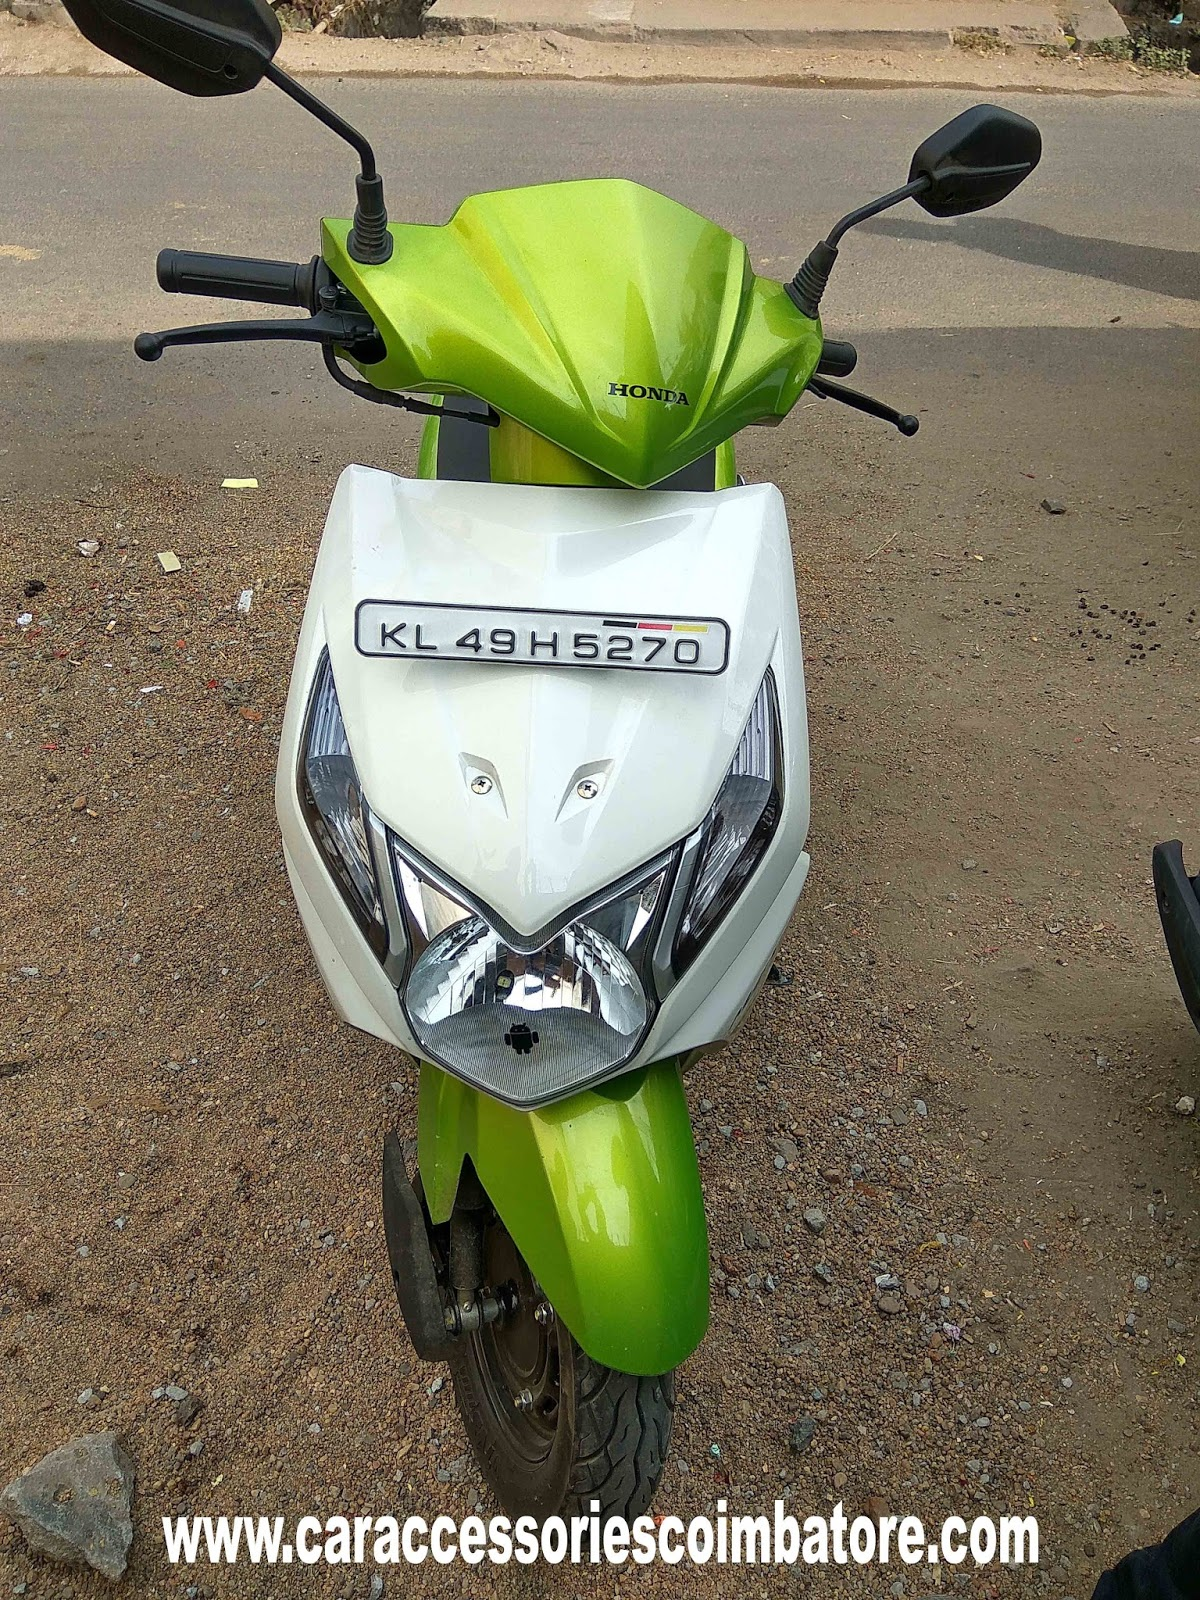 Bike Stickers Design Honda Dio Euros Number Plates Stylish For Bikes In India Aluminum With Frames Available All More Numberplatedesignscom